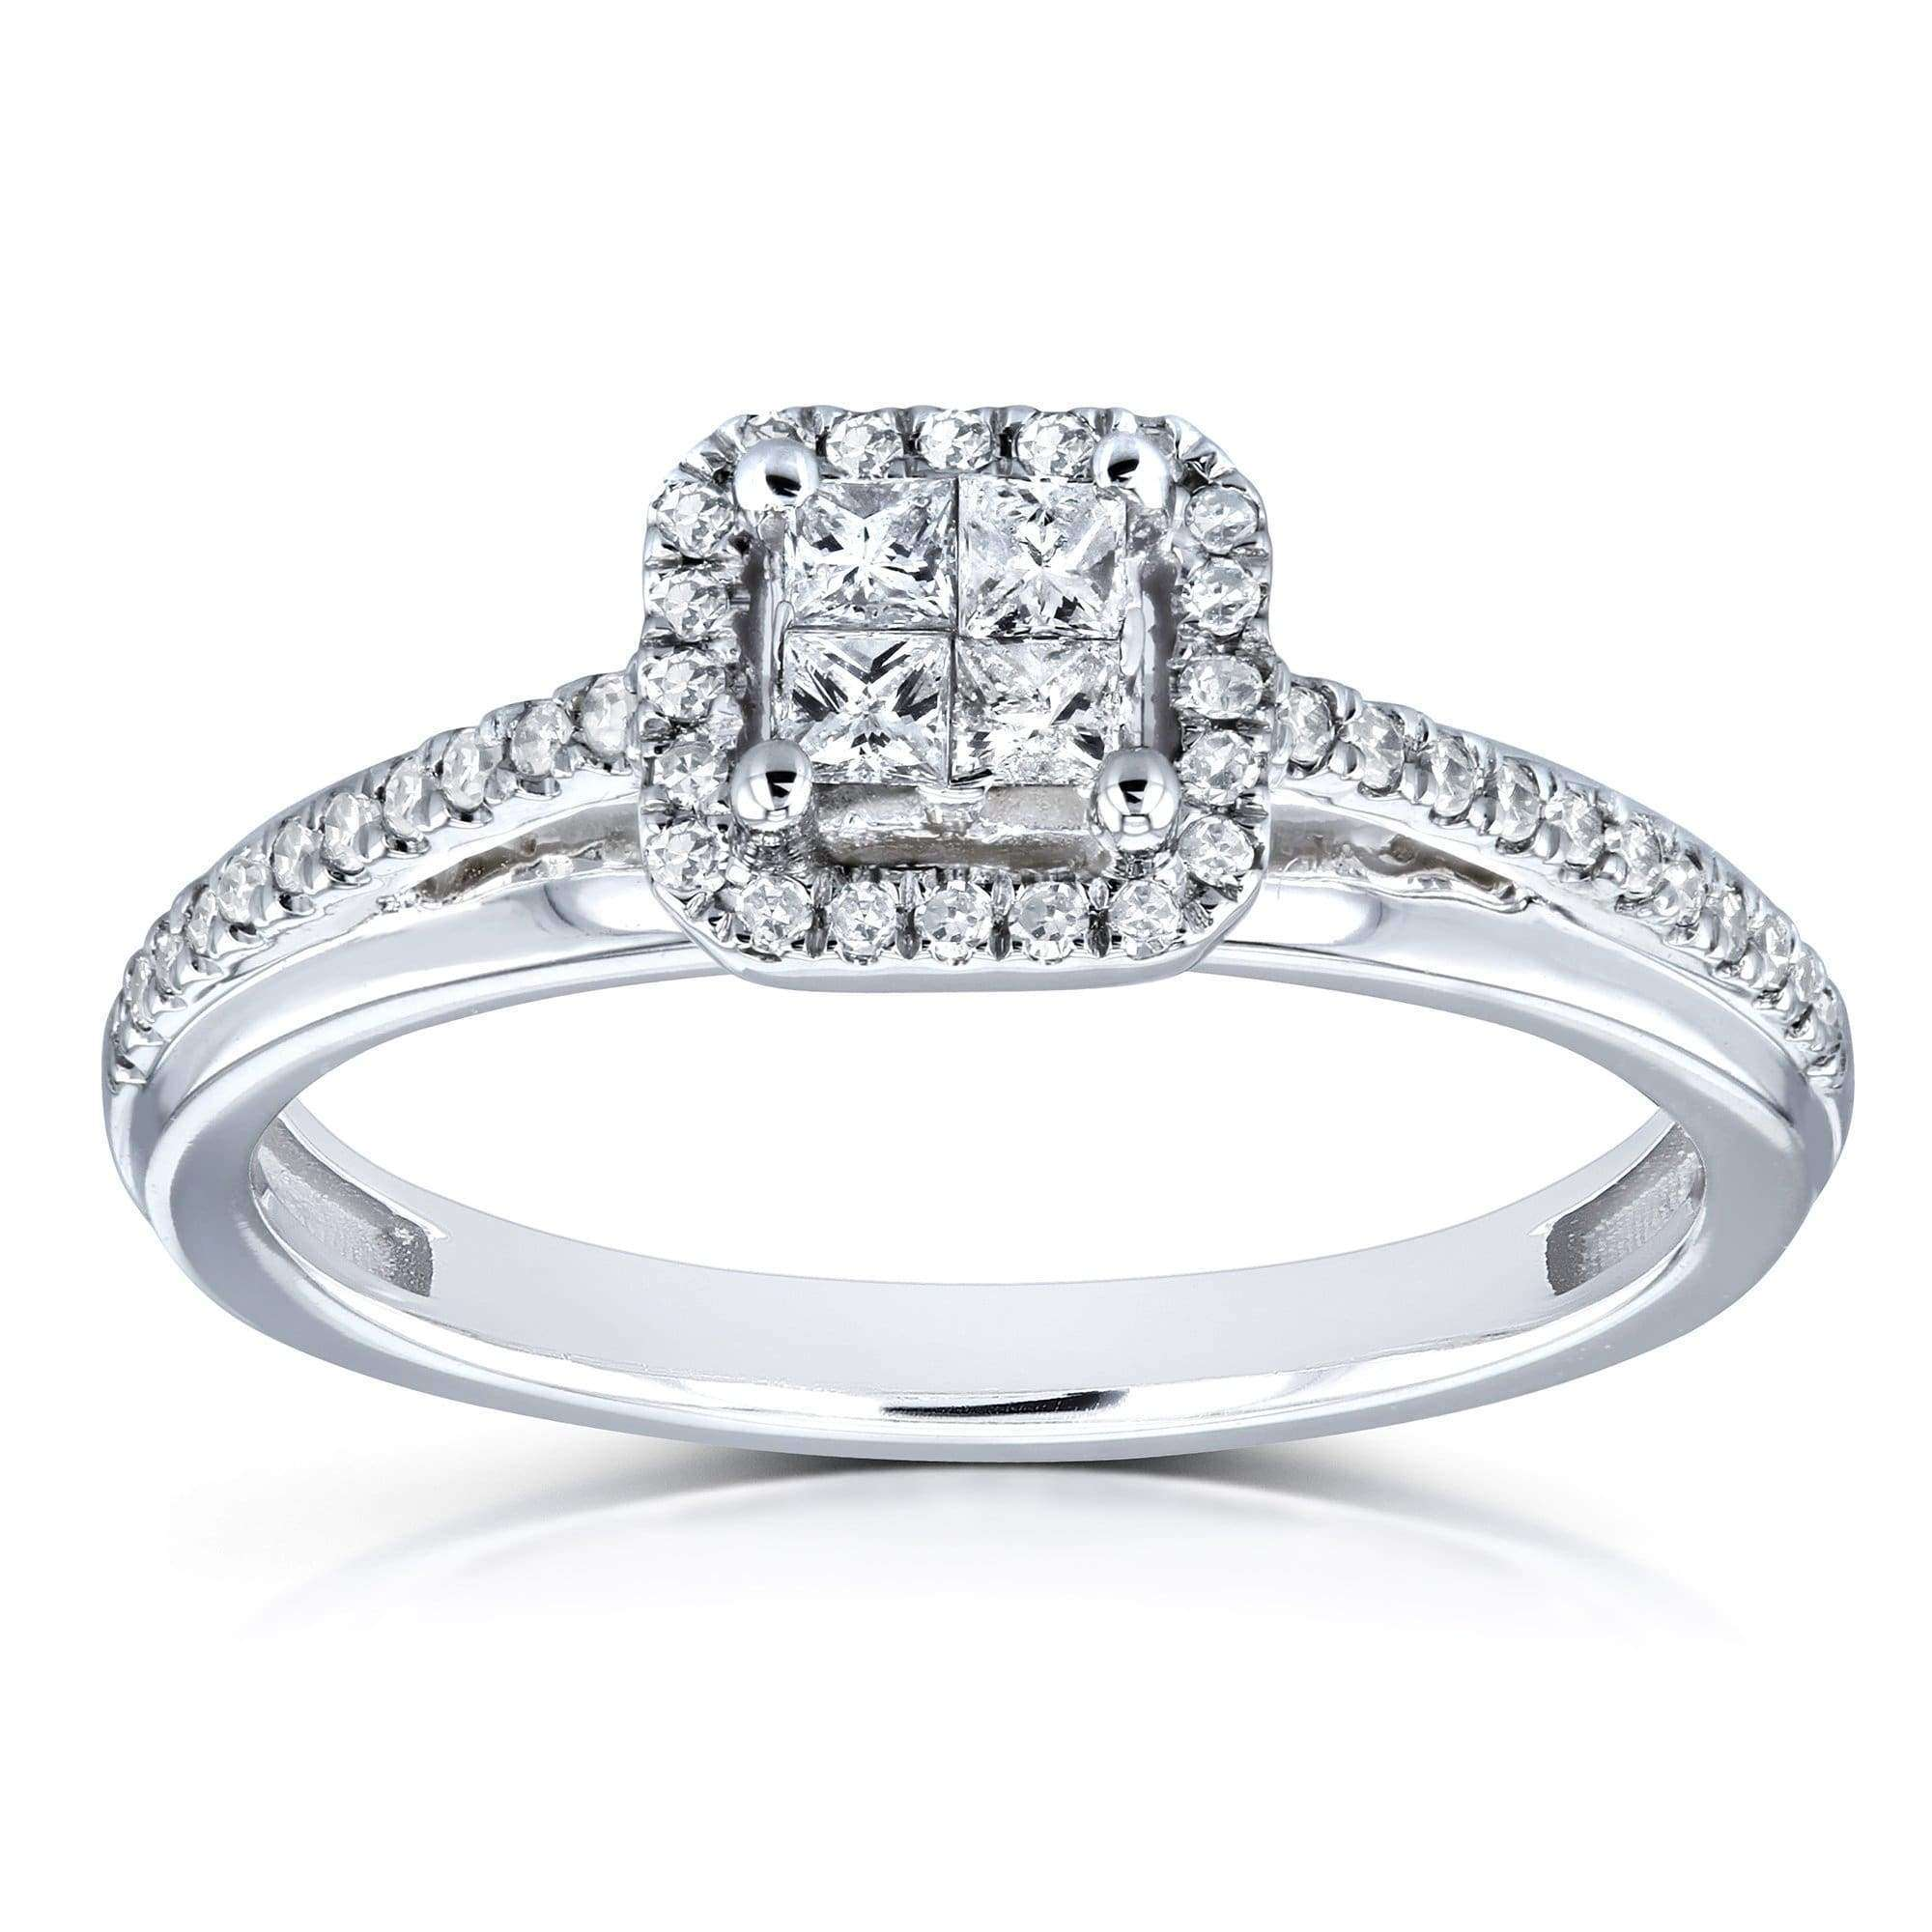 Best Diamond Cathedral Setting 1/4 Carat TW Invisible-set Princess and Halo Engagement Ring in 10k White Gold - 6.5